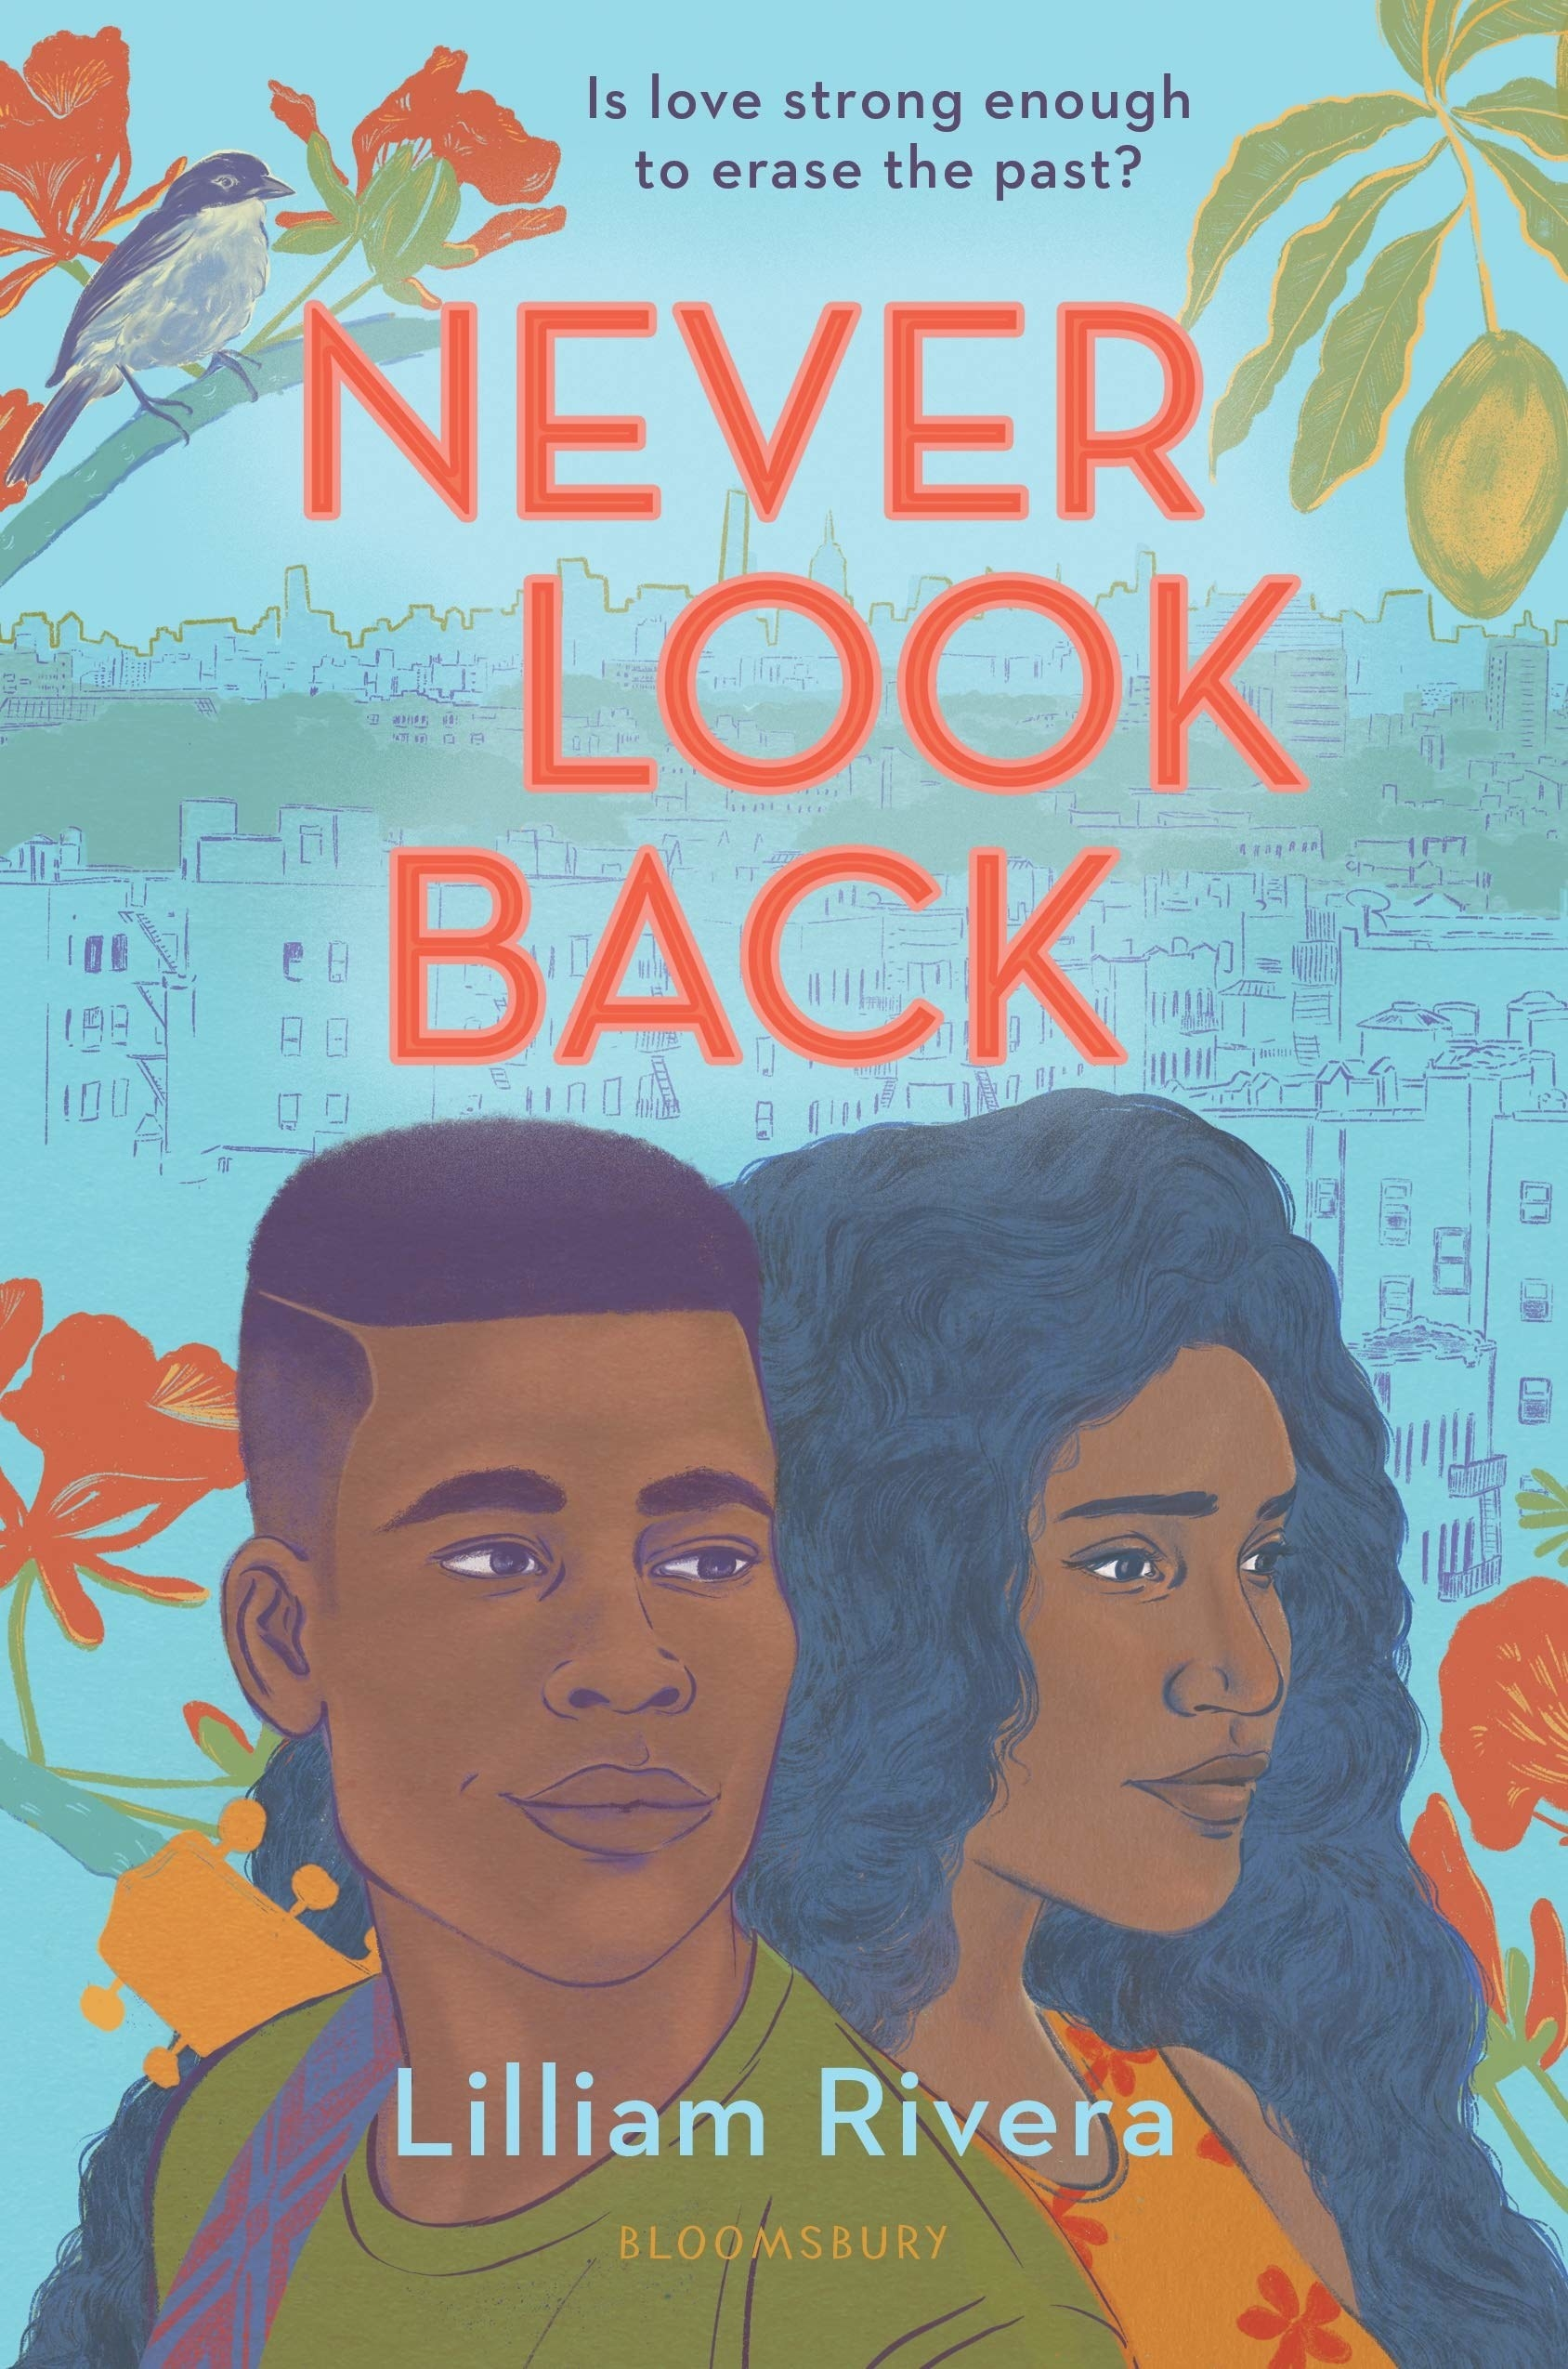 Never Look Back cover. Book by Lilliam Rivera